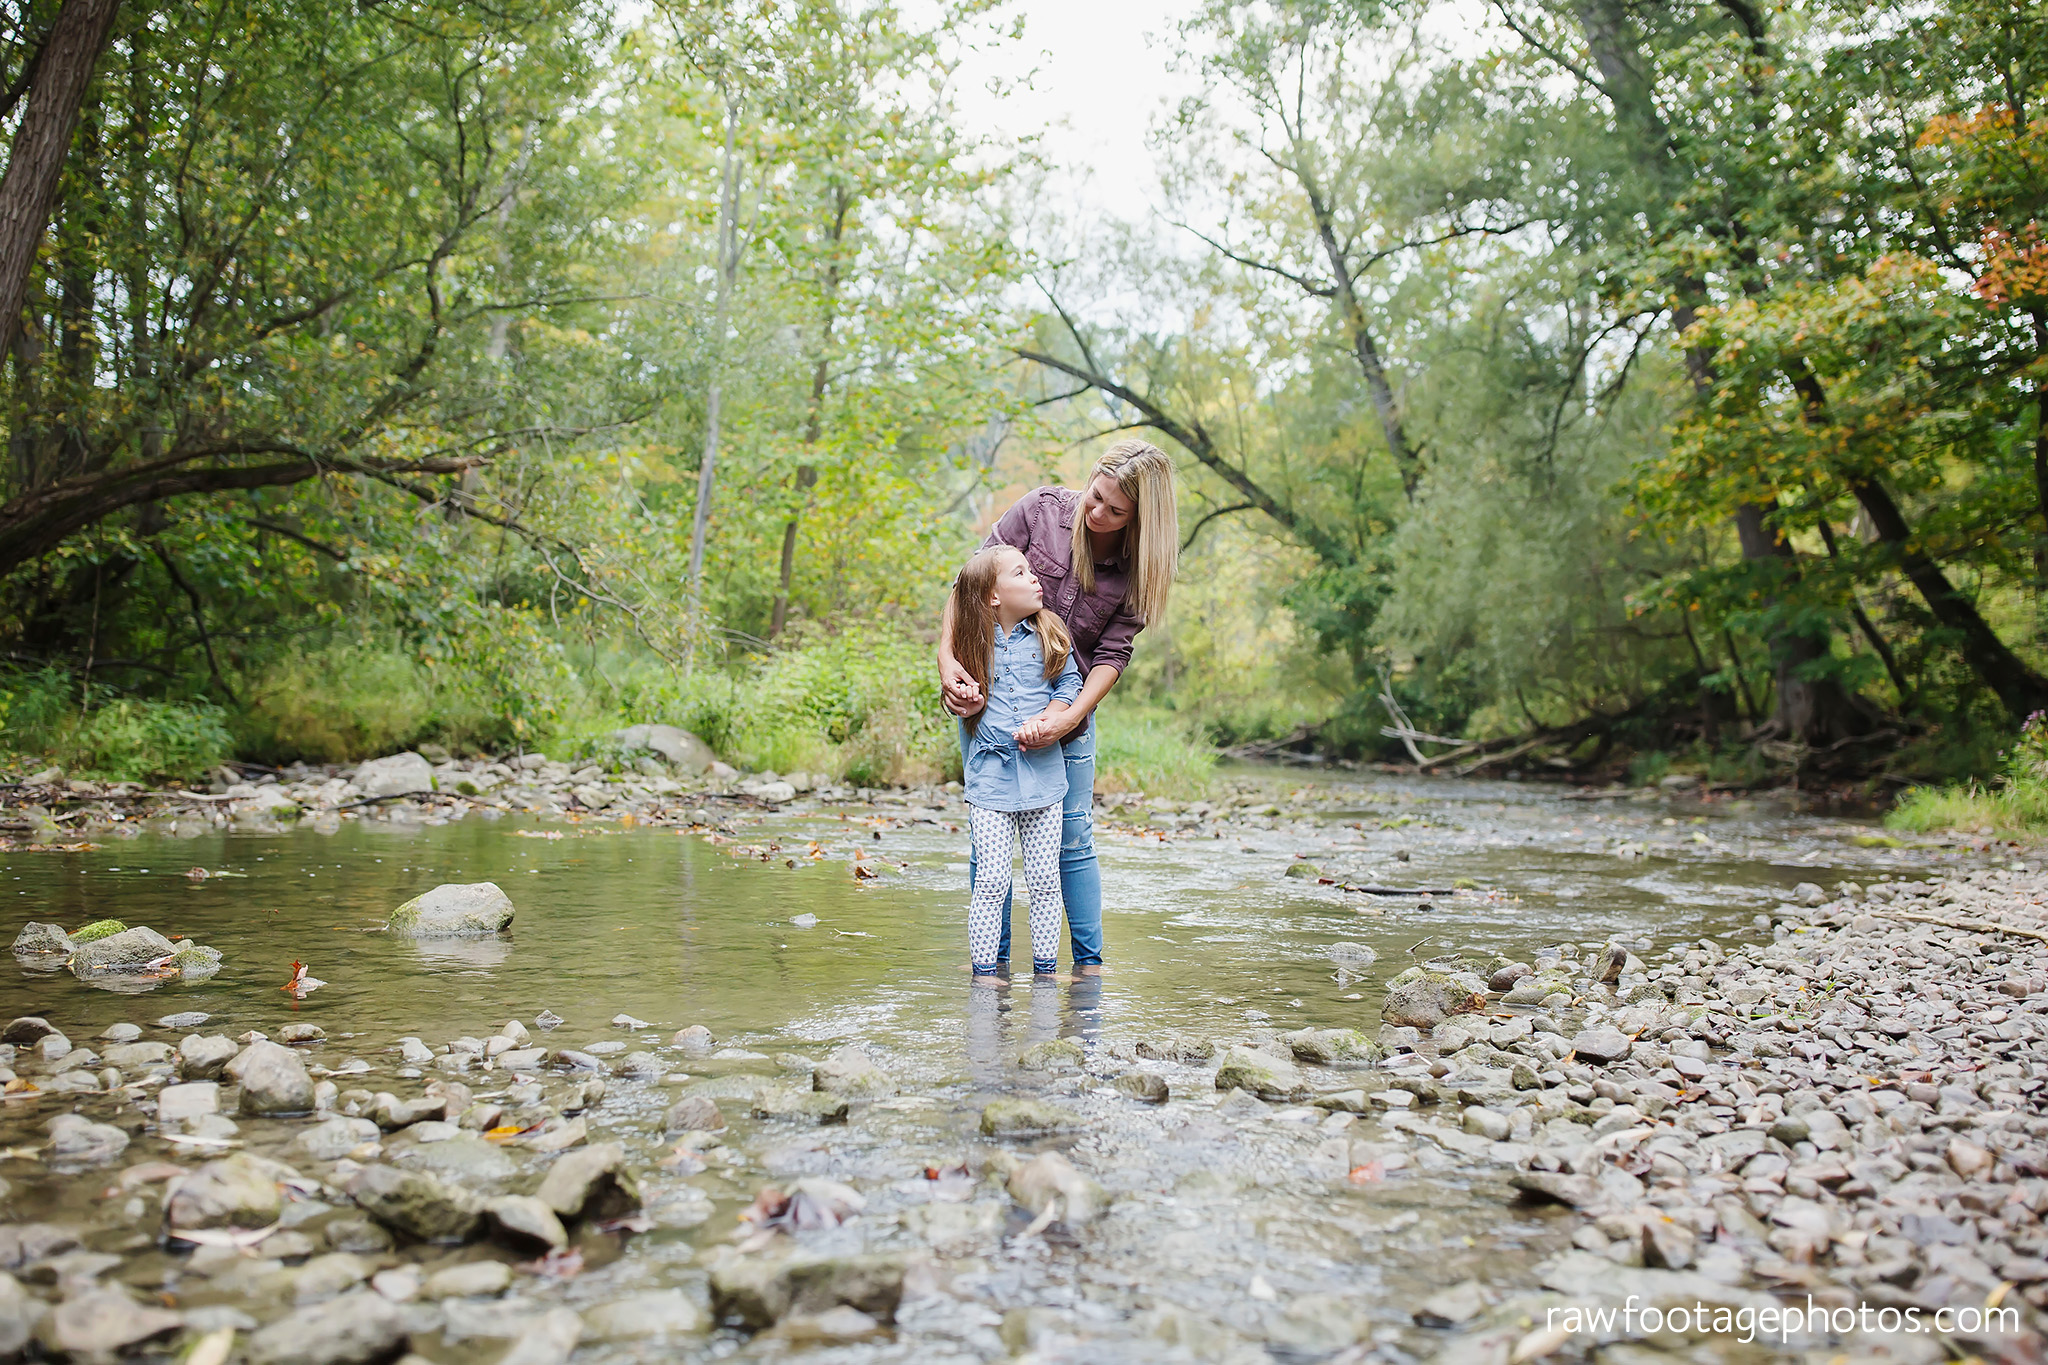 london_ontario_family_photographer-medway_creek-raw_footage_photography019.jpg